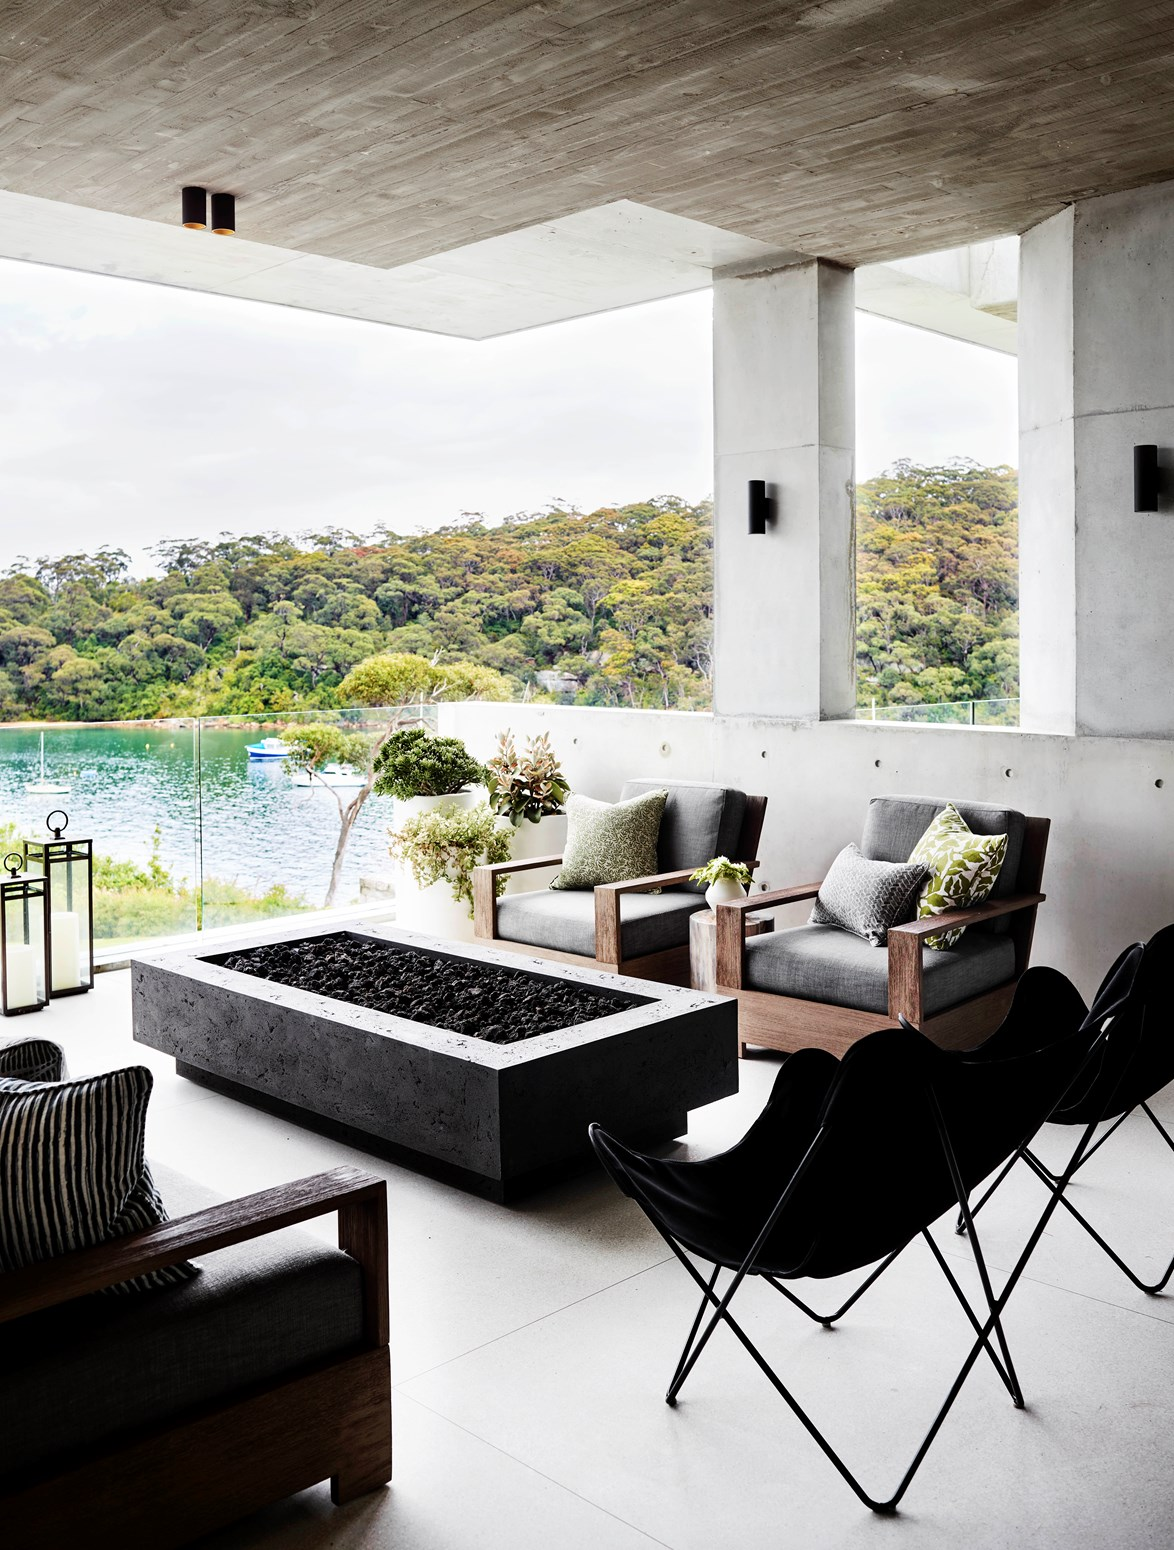 Having a fire pit doesn't need to be an eyesore. Minimalist designs in concrete, like this one in a Sydney home, blend into the decor when not in use. *Photo: Anson Smart*